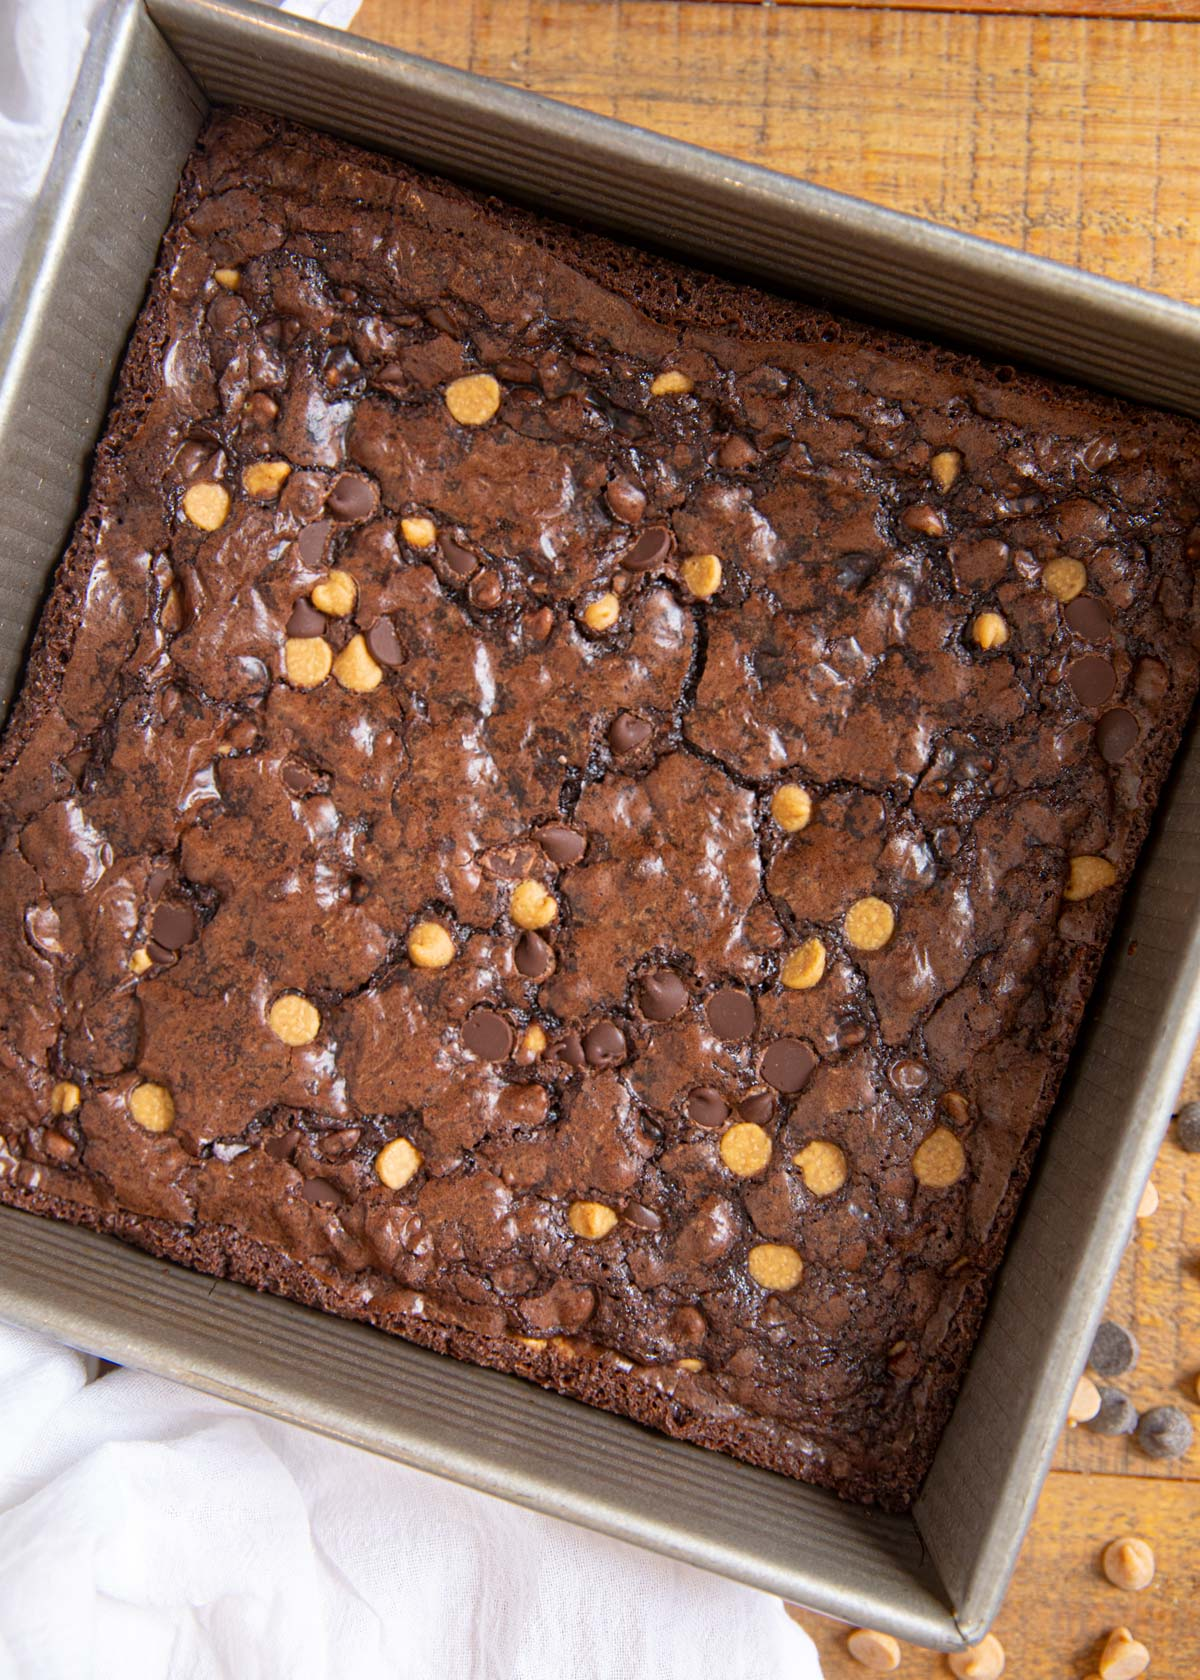 Chocolate Peanut Butter Chip Brownies top-down view in baking pan